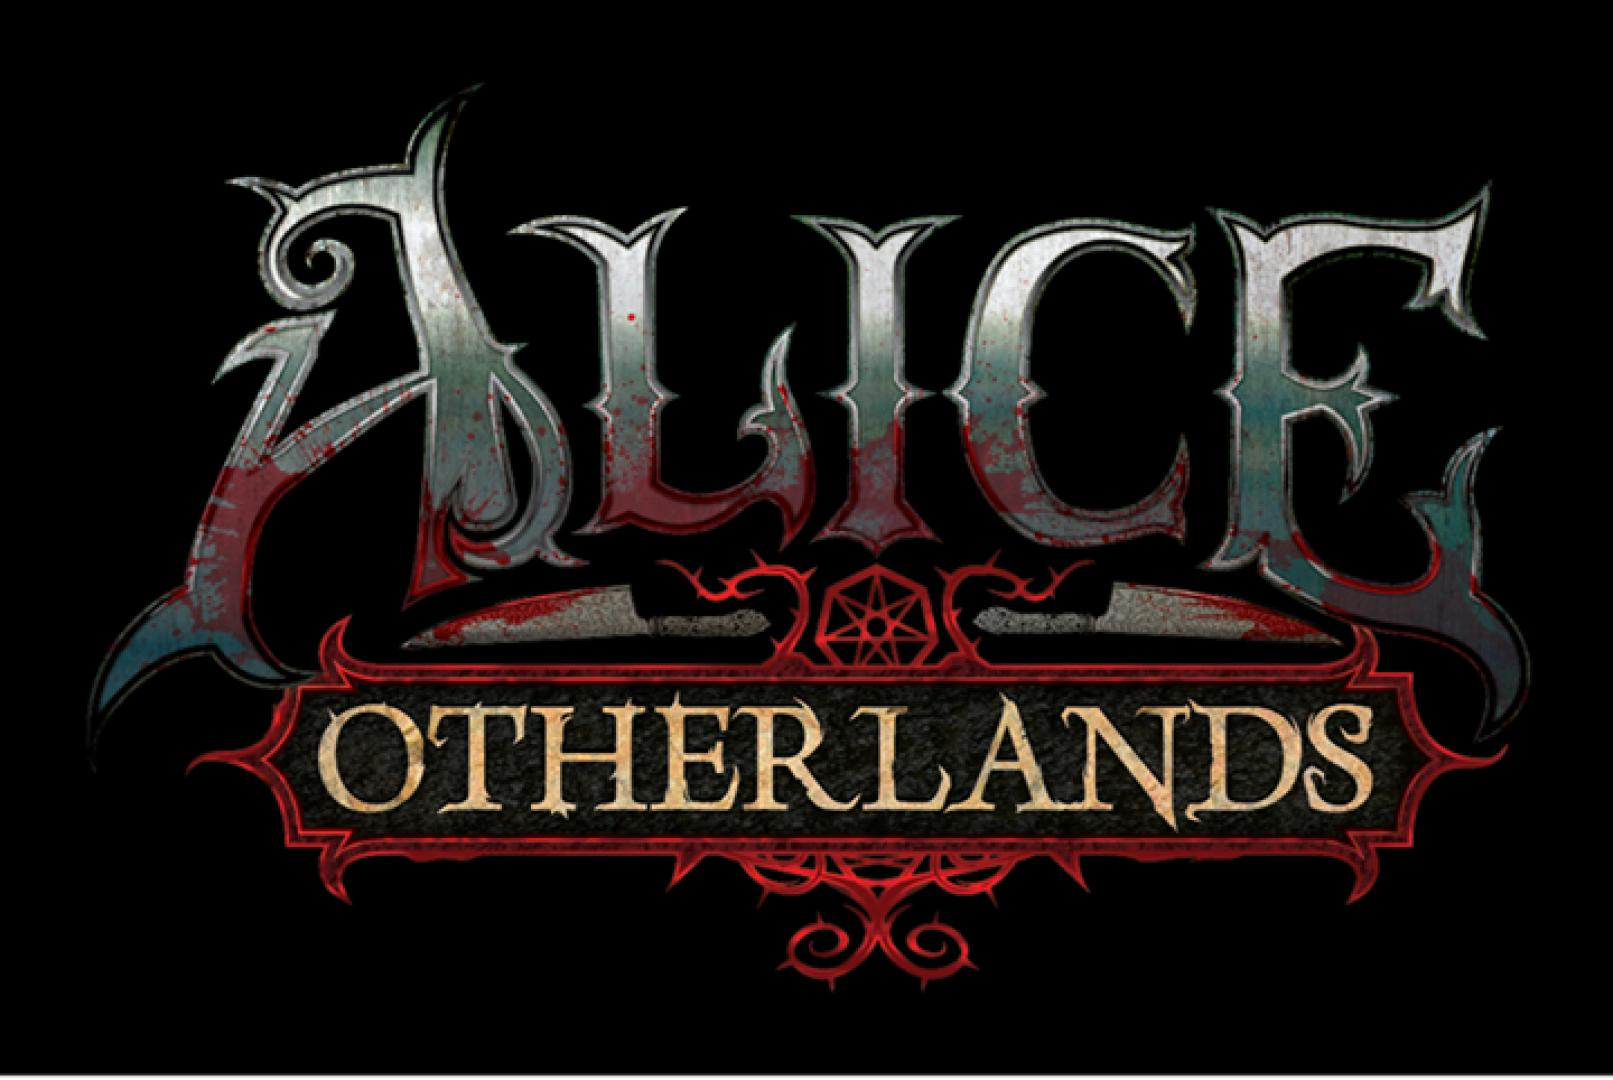 Alice: Otherlands-promócióanyag